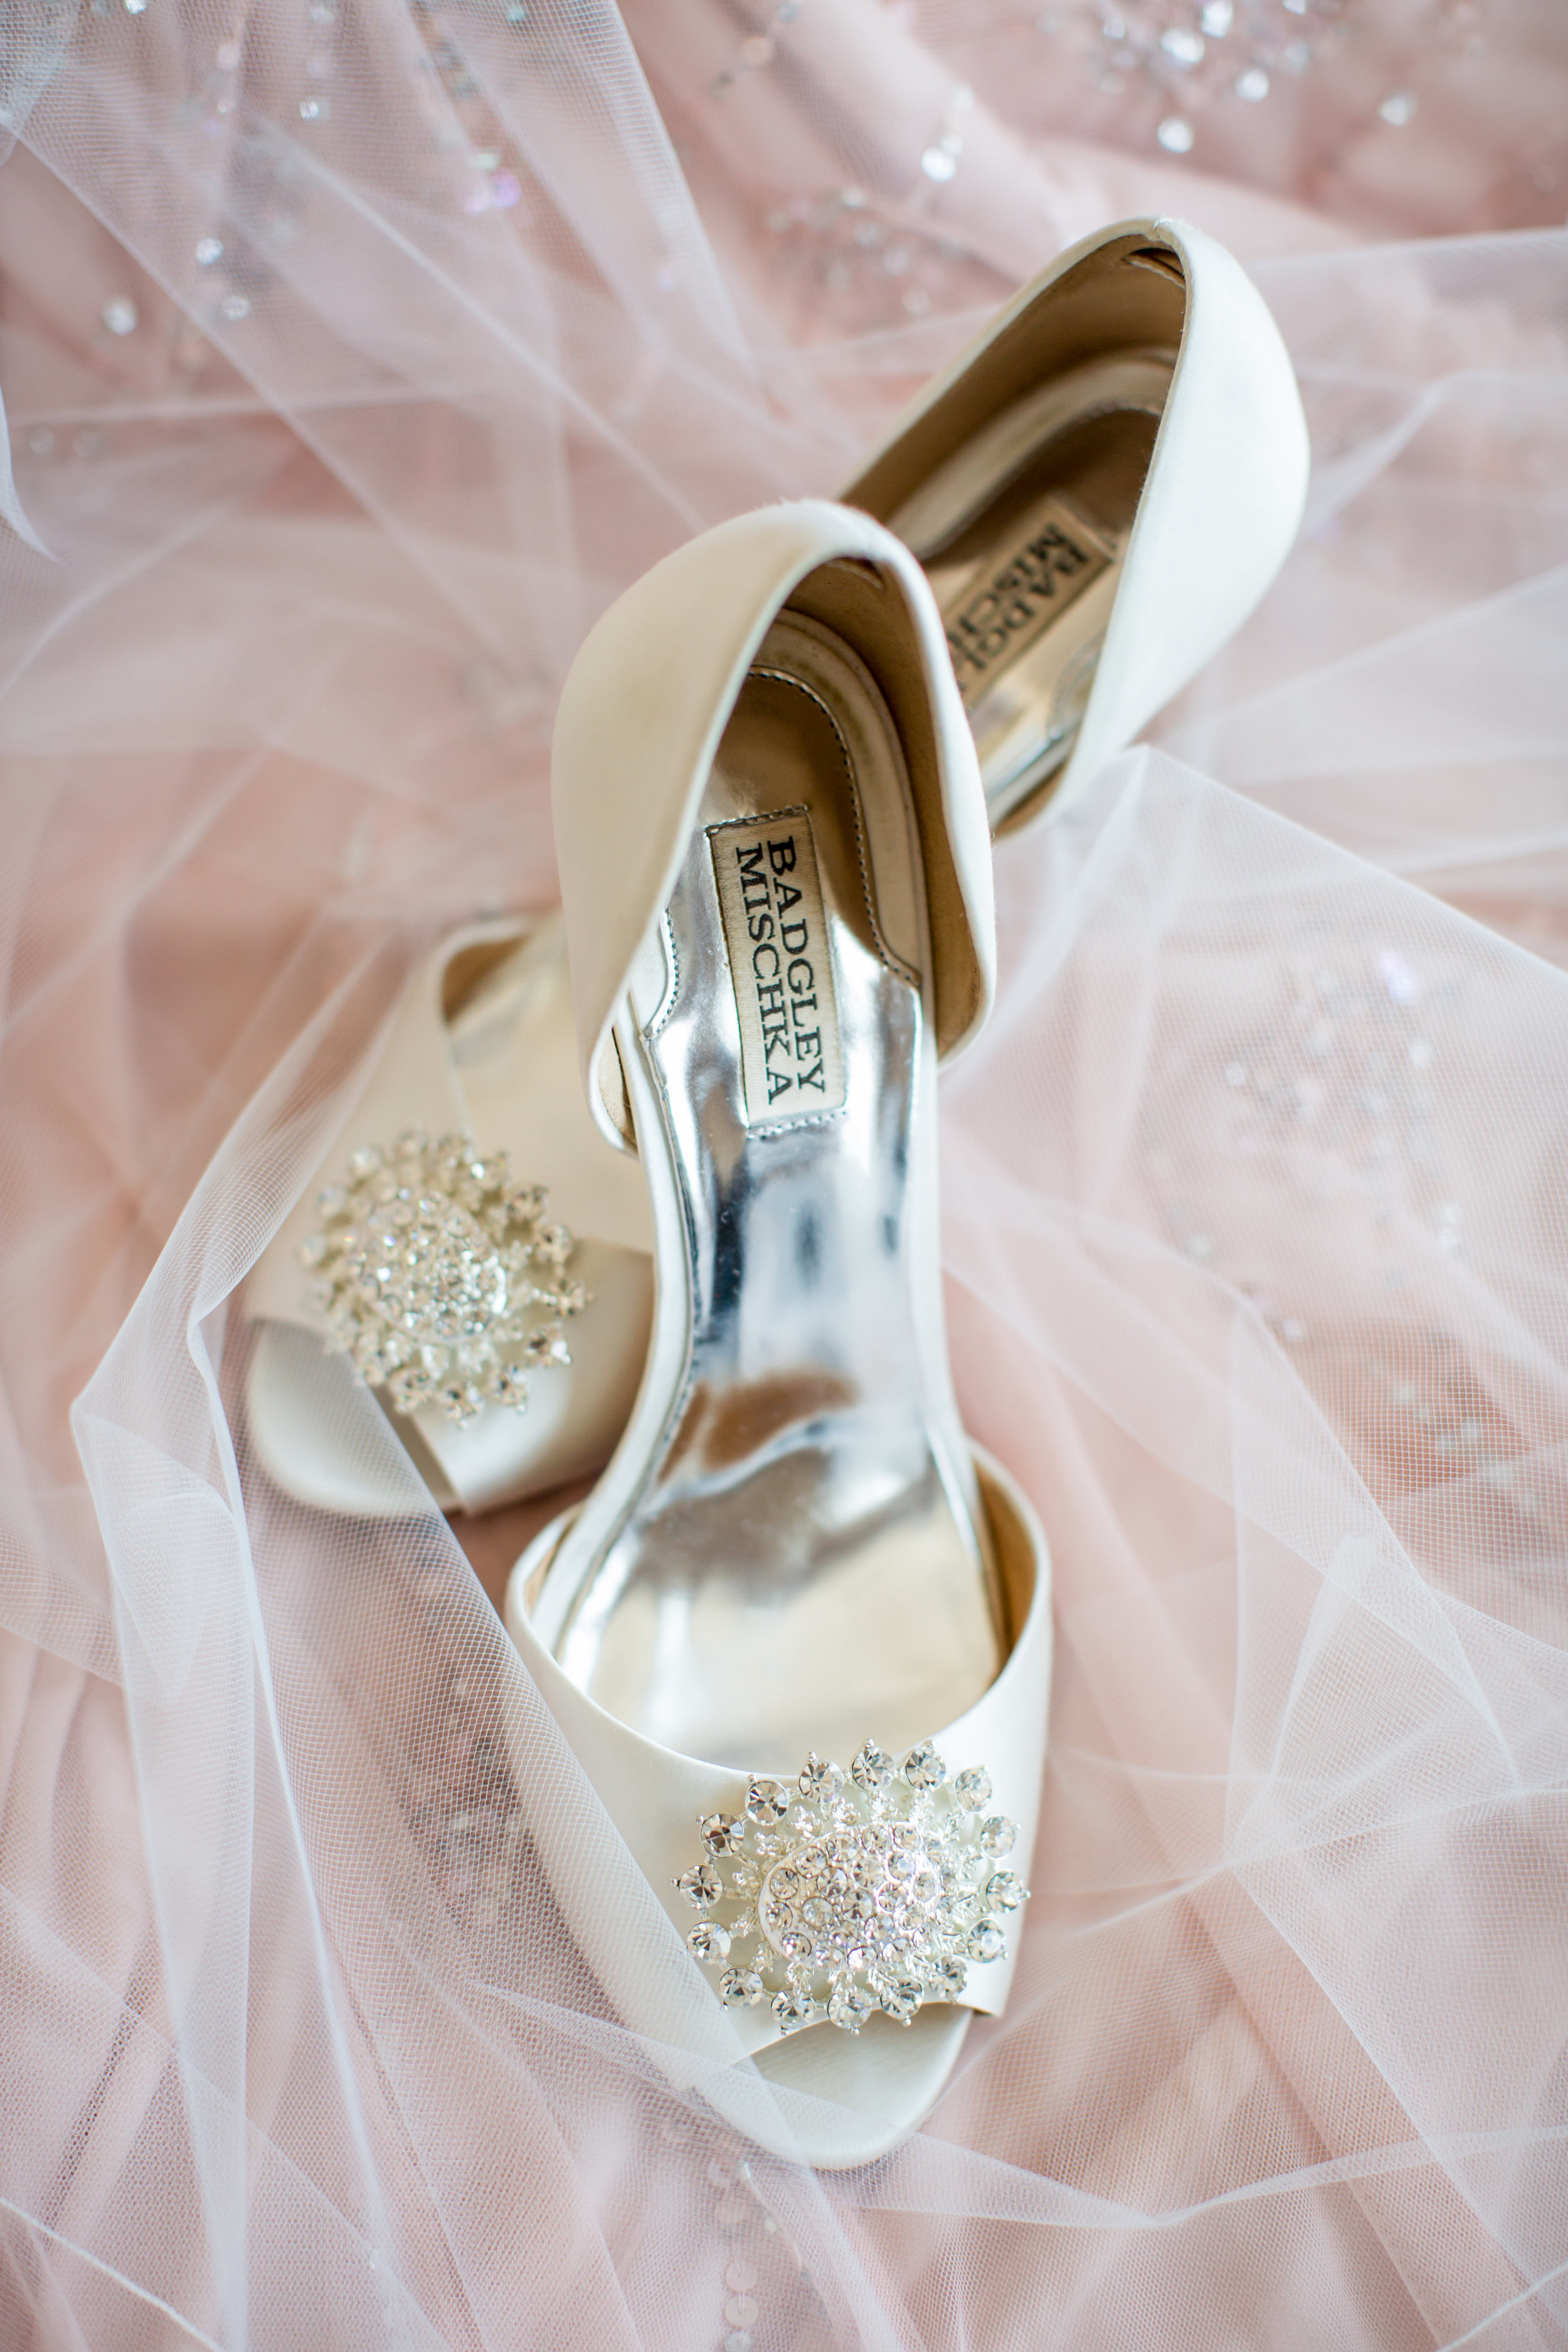 badgley mischka white wedding shoes - - A Diamond Hotel Penthouse Wedding by Katelyn Owens Photography